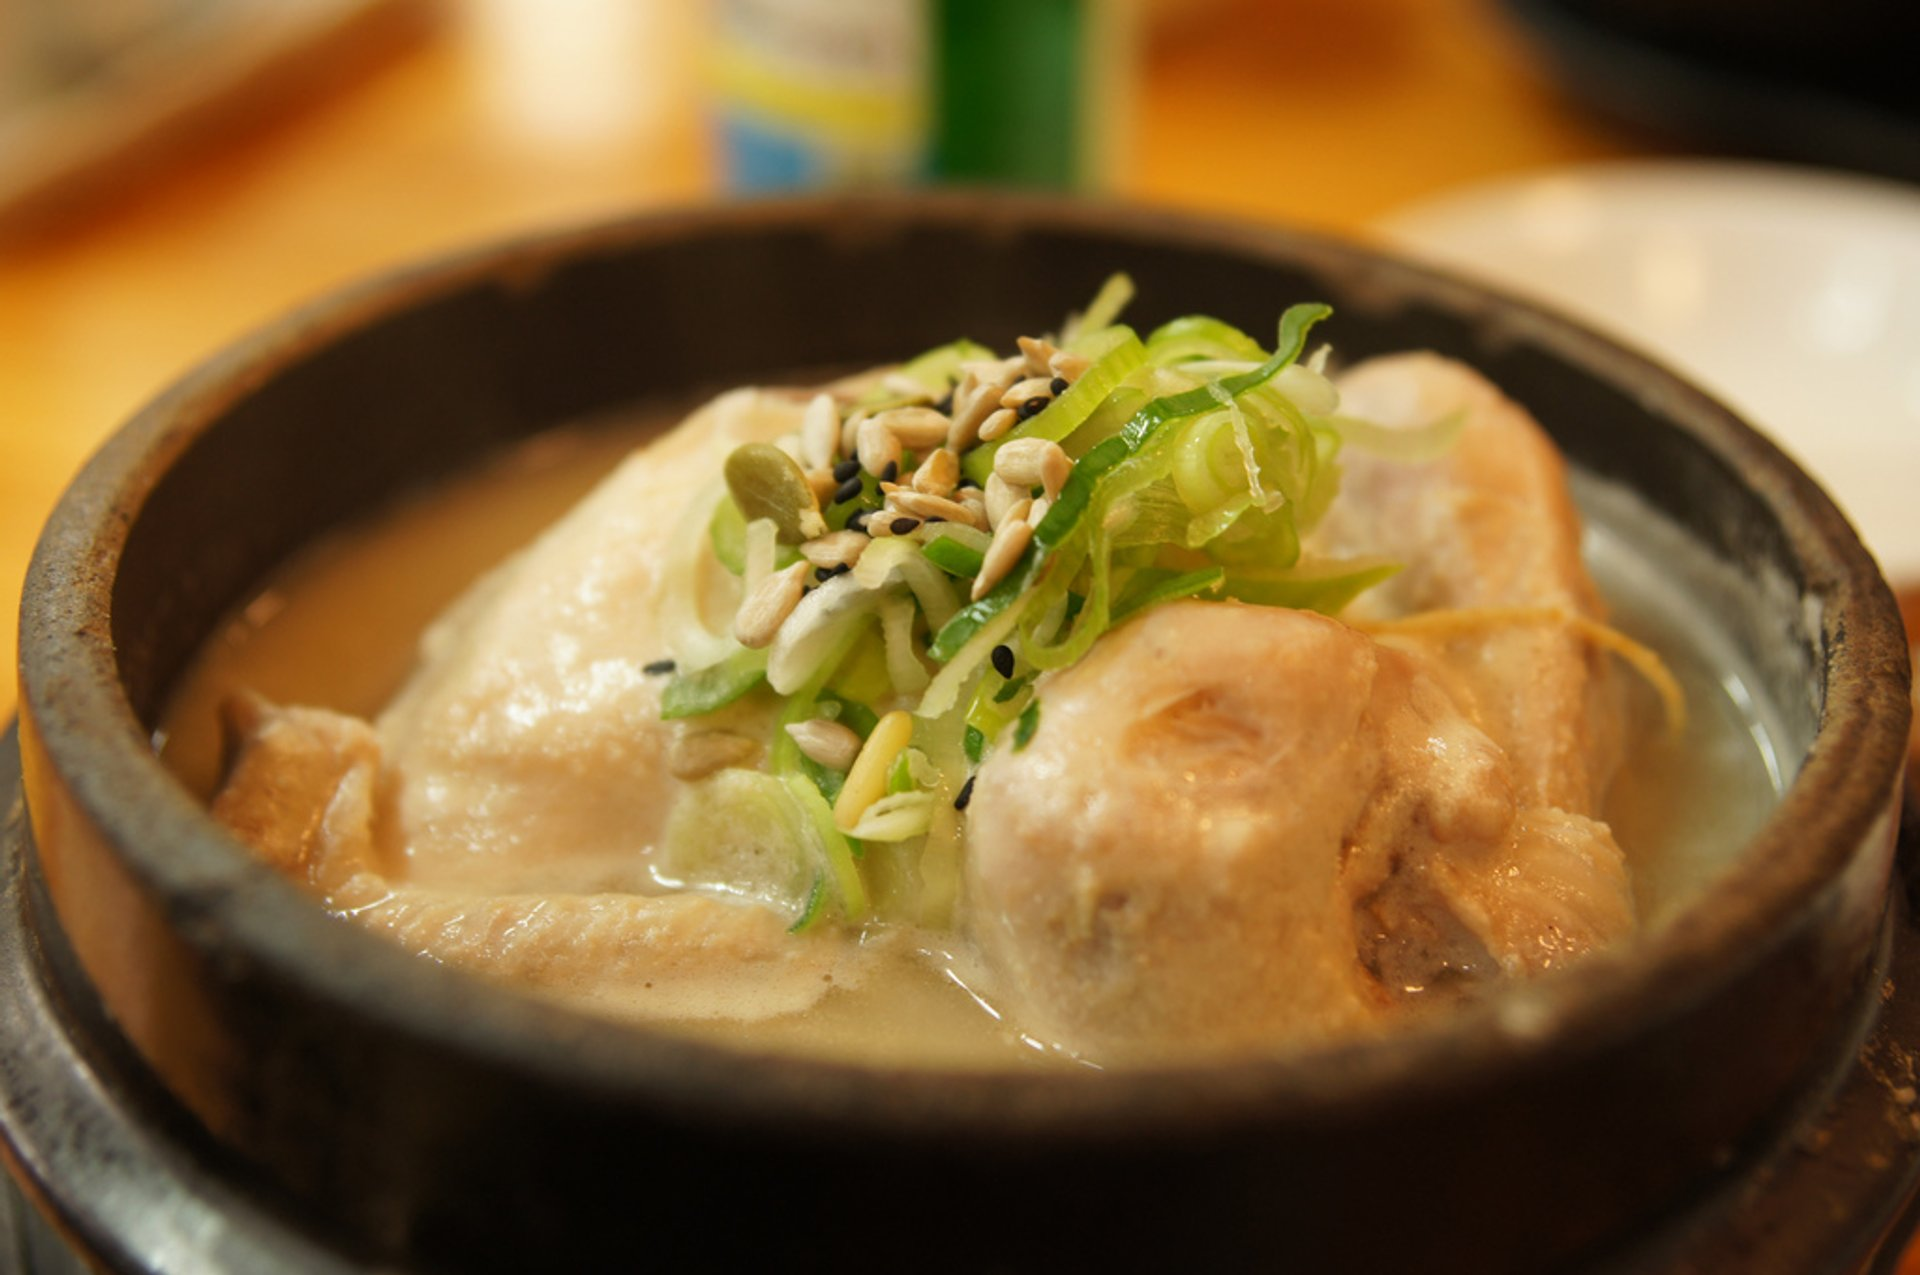 Eat Samgyetang on the Hottest Day in South Korea 2020 - Best Time